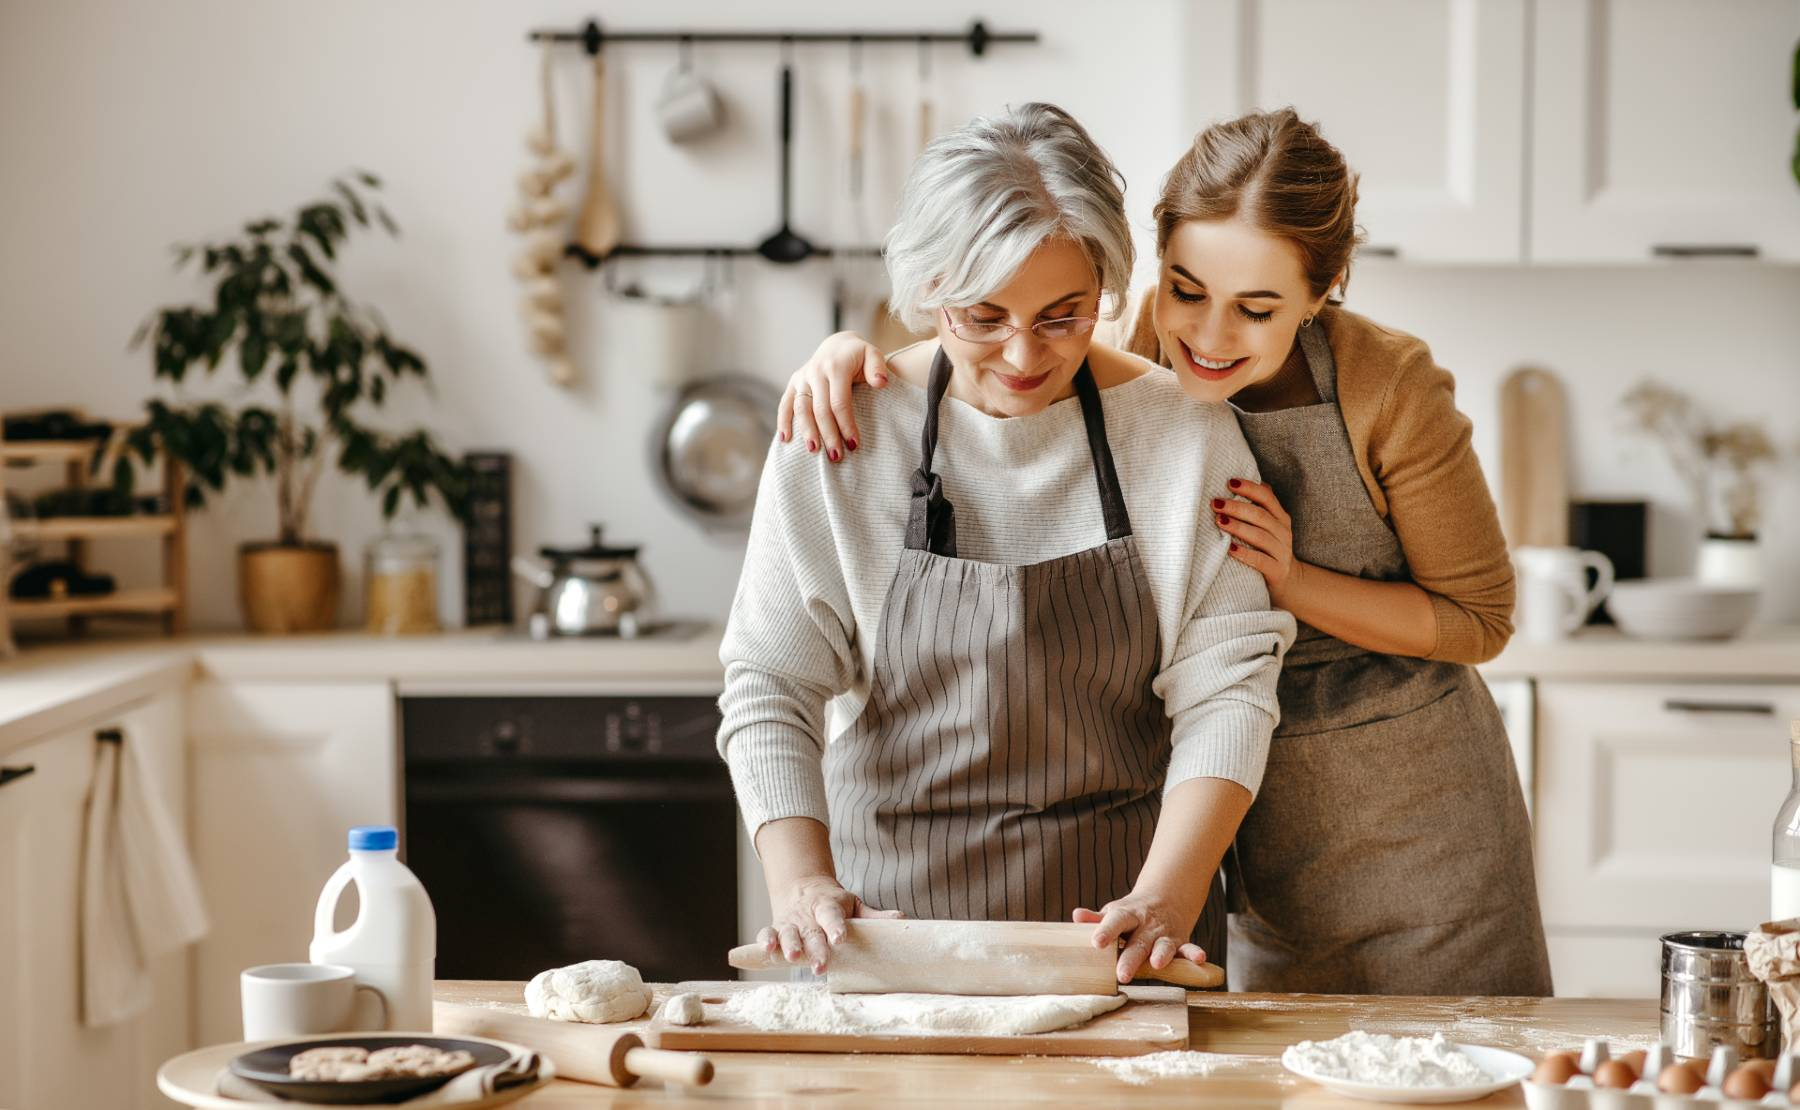 A daughter watches on as her elderly mother uses a rolling pin to roll out dough in the kitchen